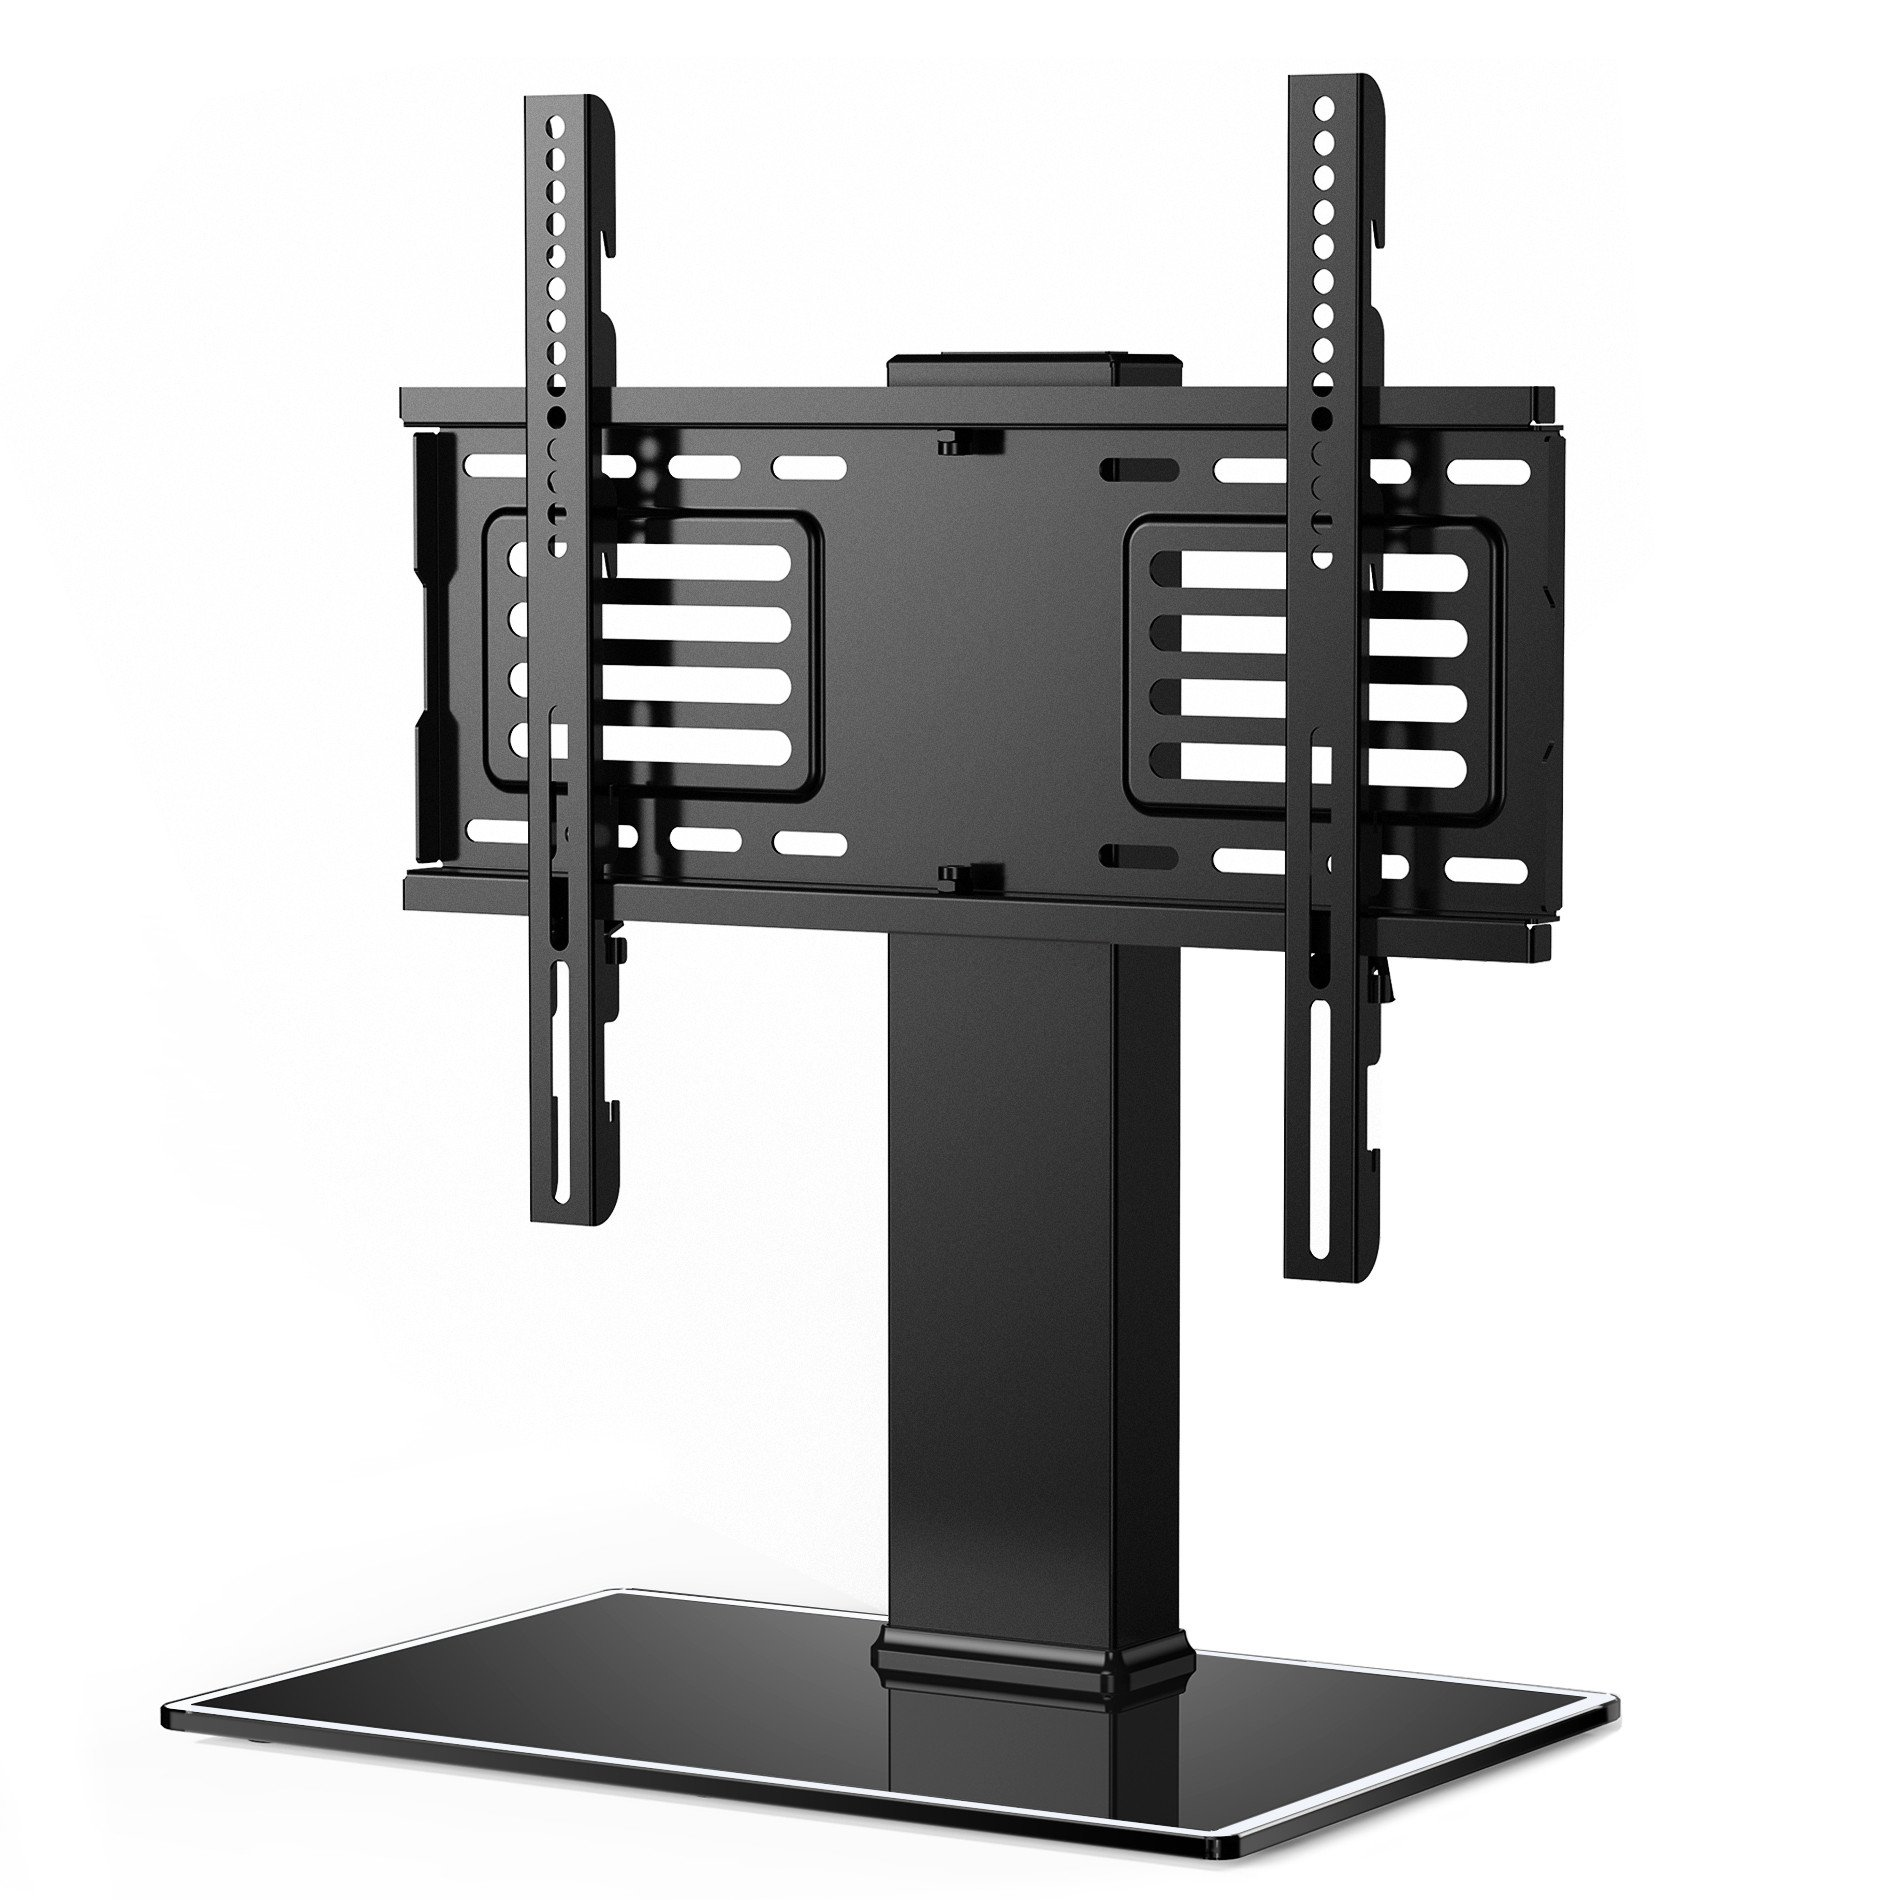 Universal Tv Stand With Swivel Mount Pedestal Base Wall Mount For 32 50 Lcd Led Tvs Tt104801gb Universal Tv Stand Tv Stand With Swivel Mount Tv Base Stand